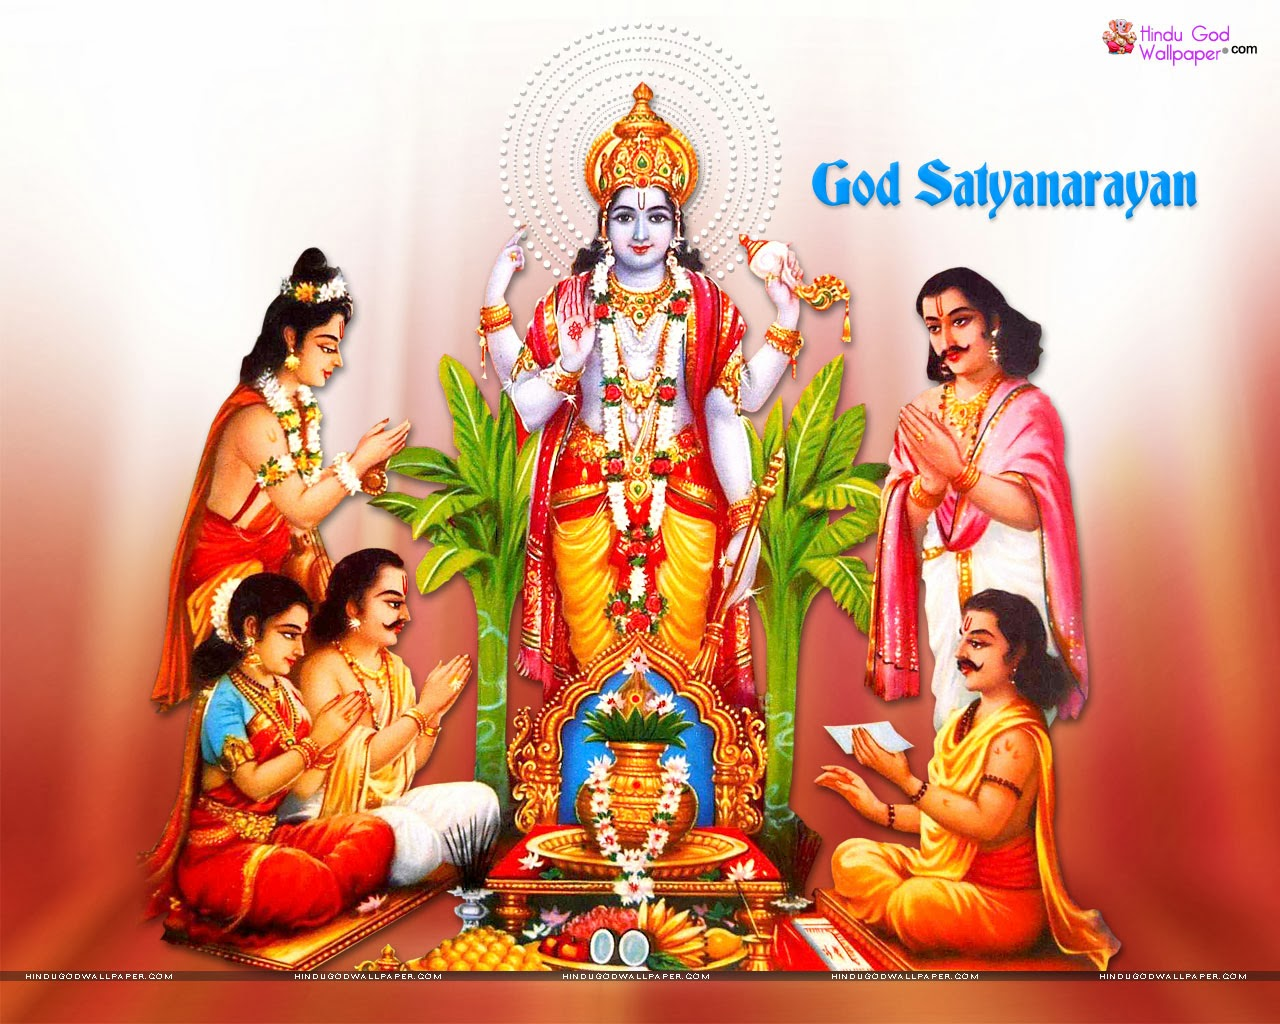 bhagwan ji help me lord satyanarayan bhagwan hd wallpapers for